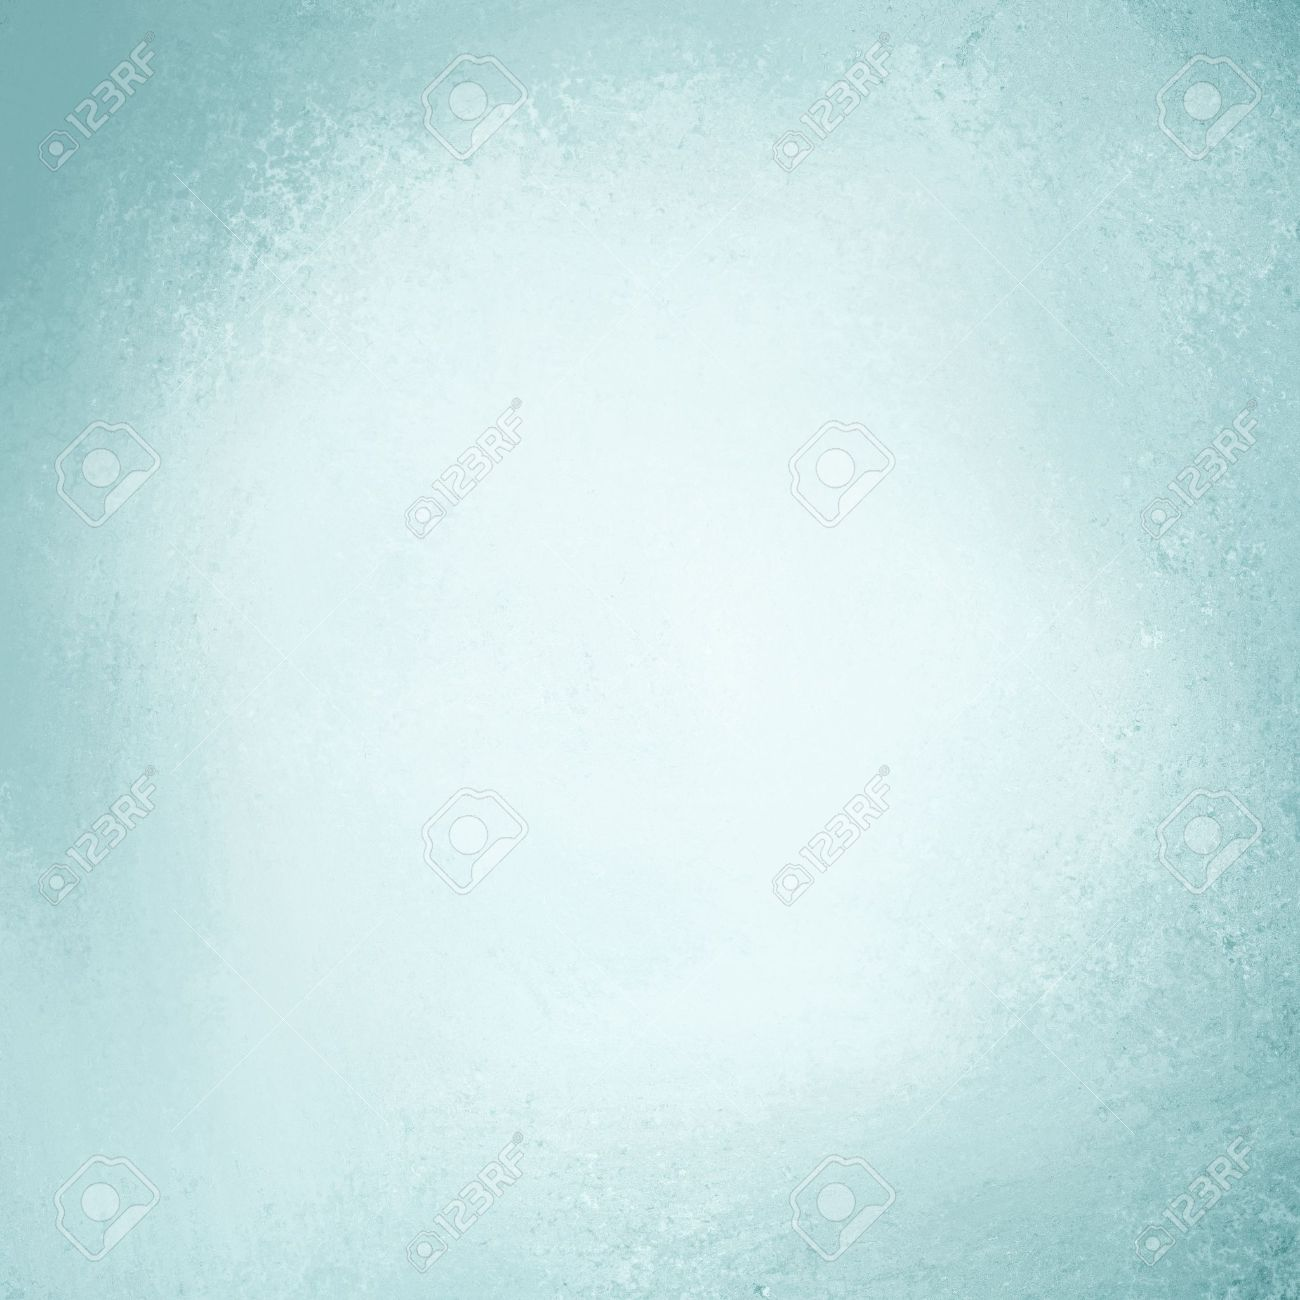 pale light blue background with white center stock photo 12865973